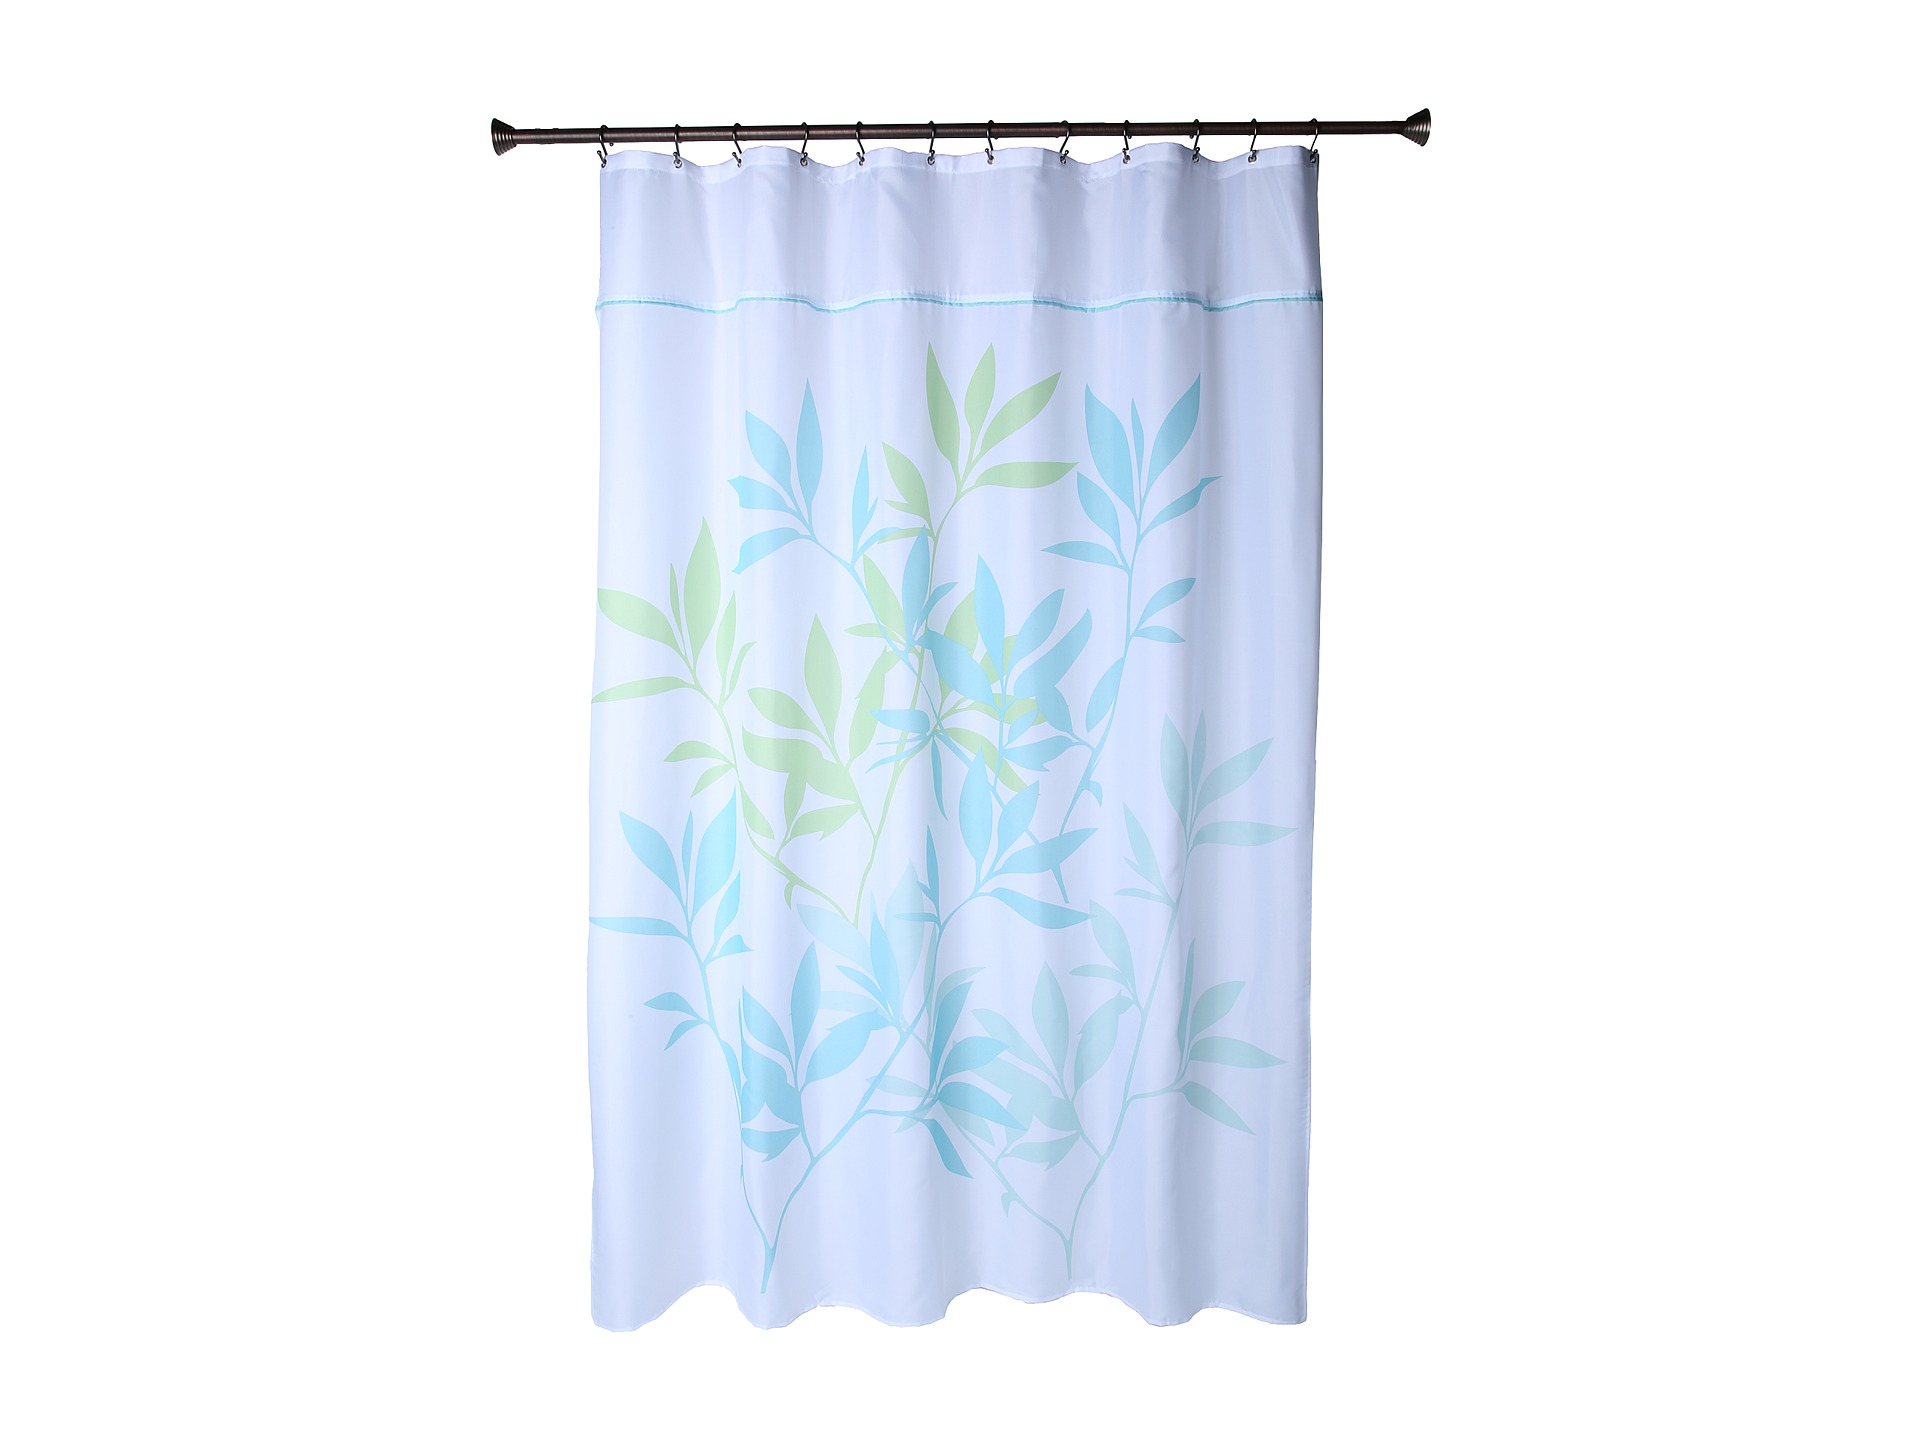 No Results For Interdesign Leaves Shower Curtain Long Search